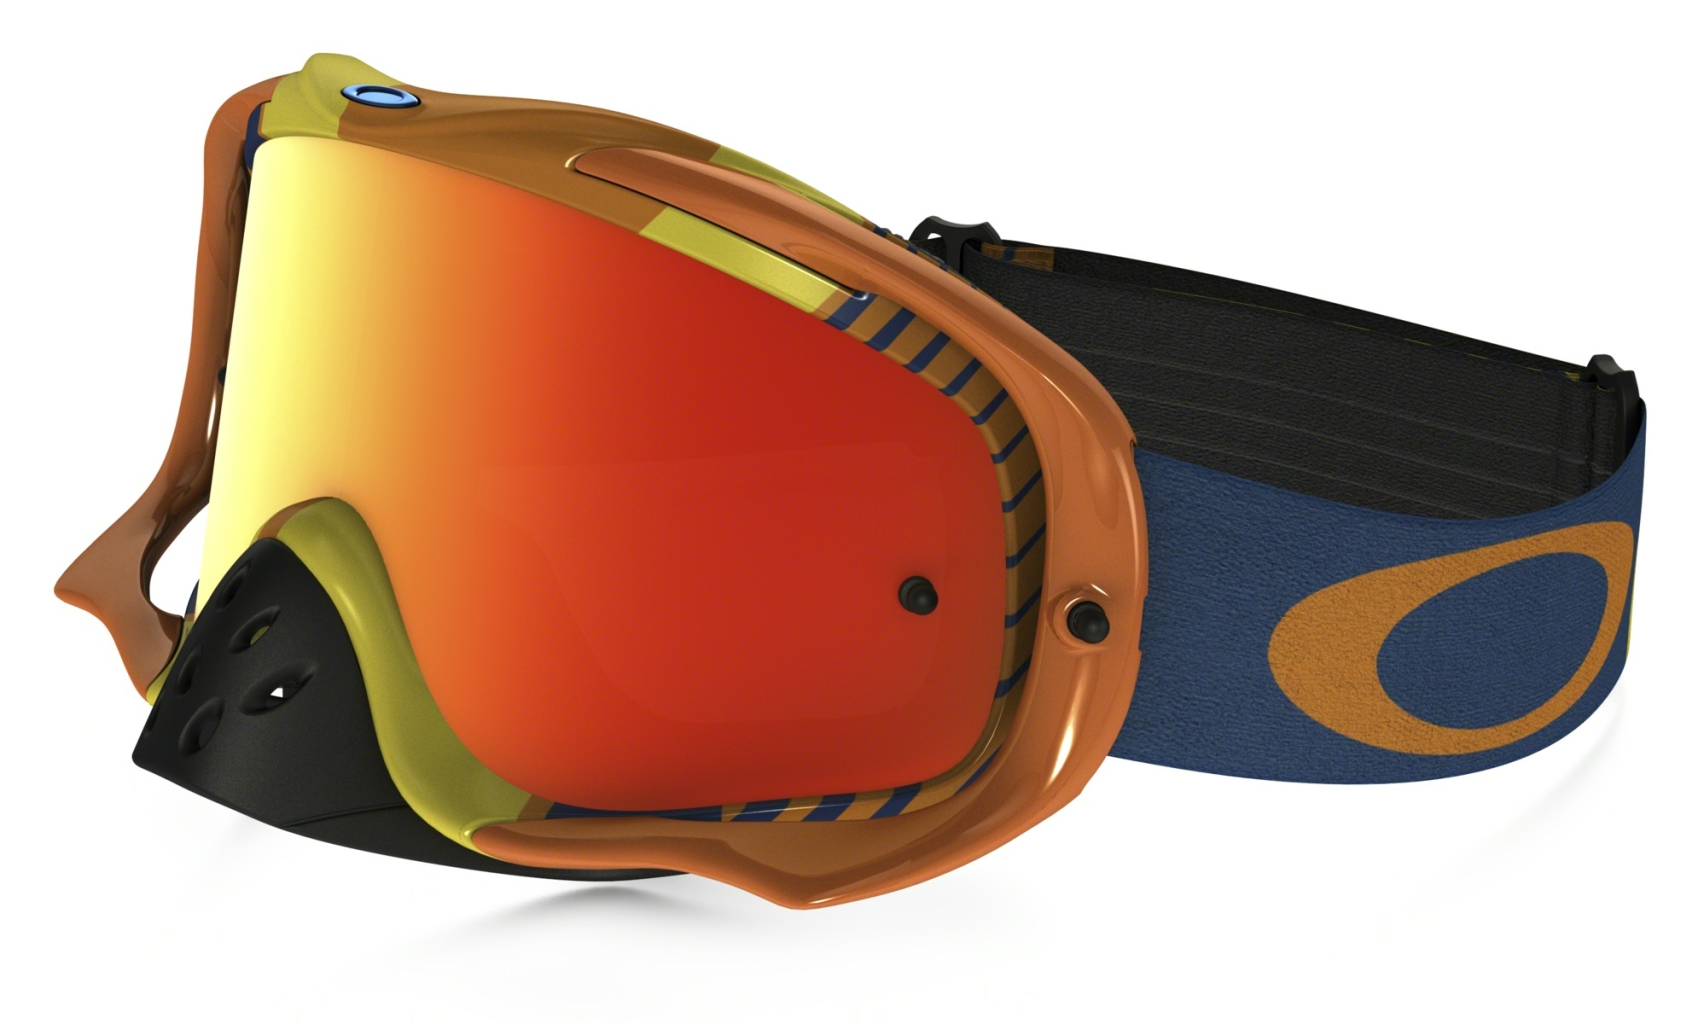 Oakley Crowbar Mx Frame: BIOHAZARD ORANGE/BLUE Lens: FIRE IRIDIUM-30